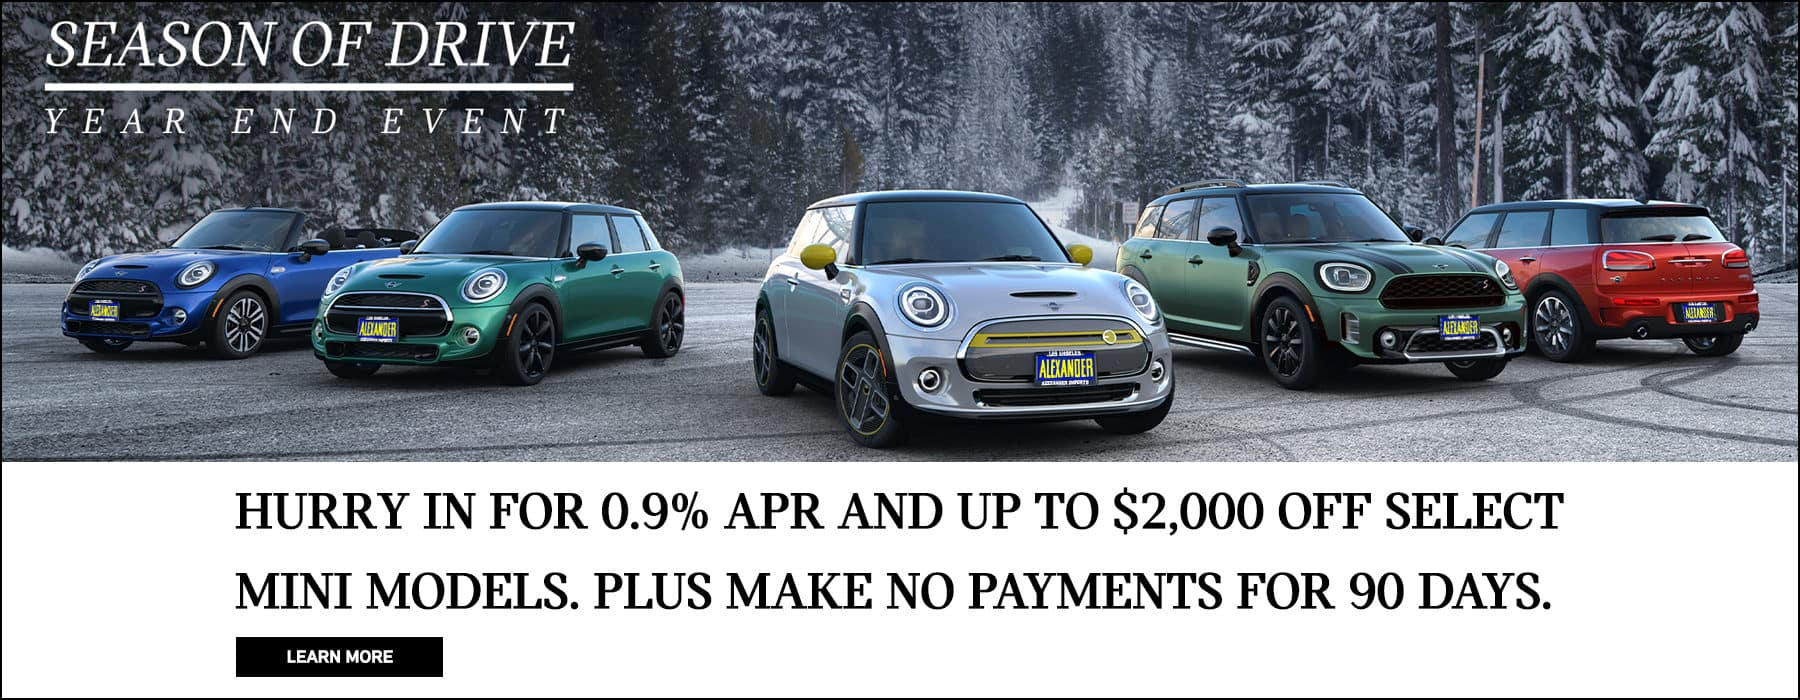 Season of Drive Year End Event. Hurry in for up to $2,000 off select models, 0.9% APR financing for up to 60 months, plus 90 days to first payment. Learn more.